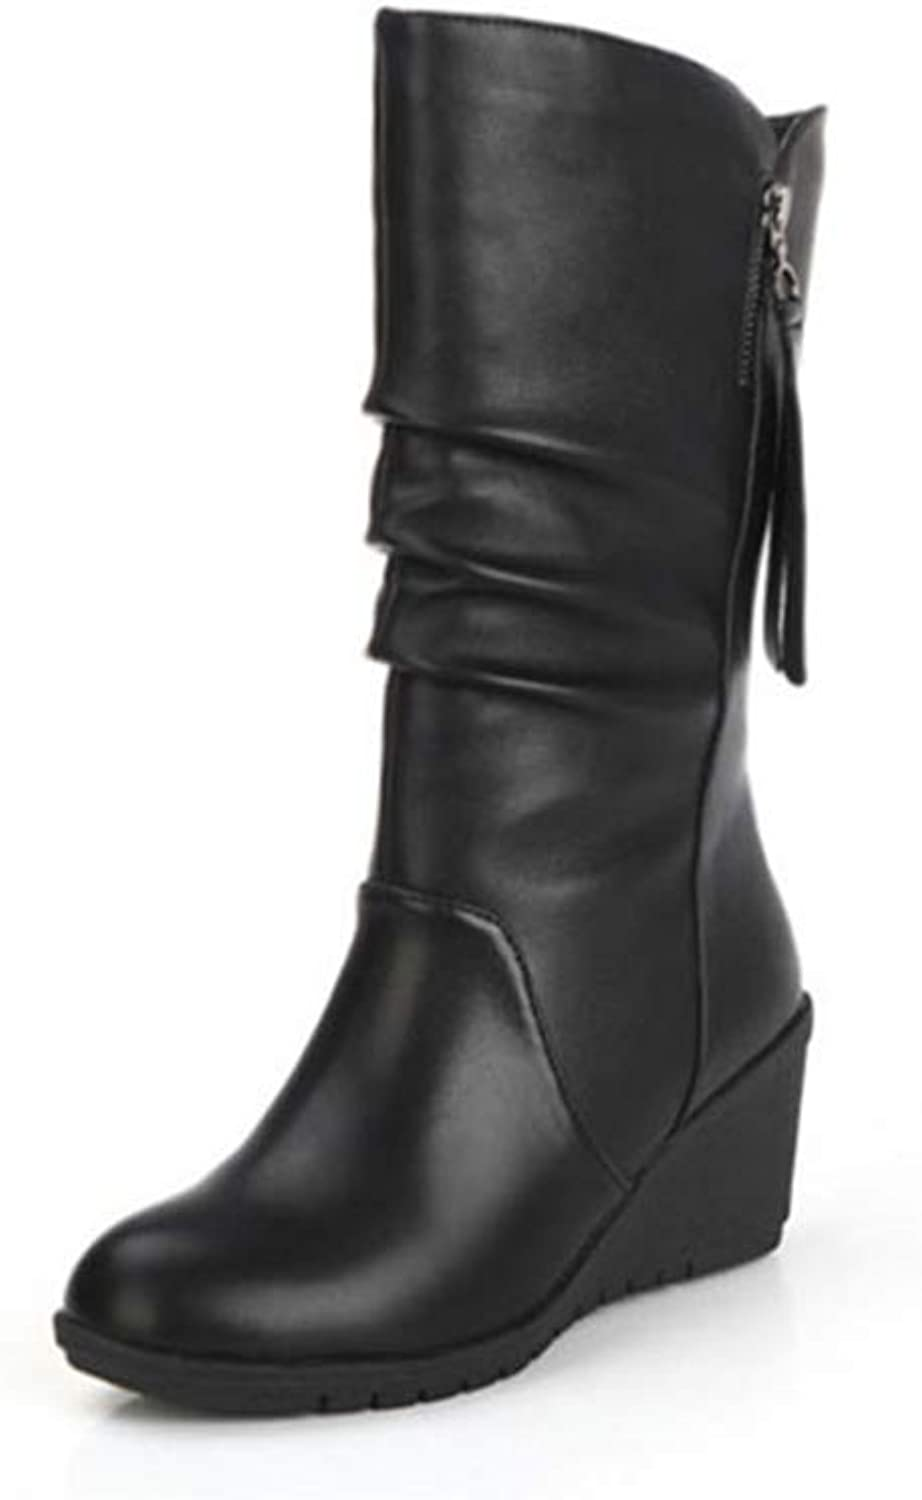 F1rst Rate Women's Mid Calf Boots - Trendy Platform Round Toe Pull On Platform Snow Boot